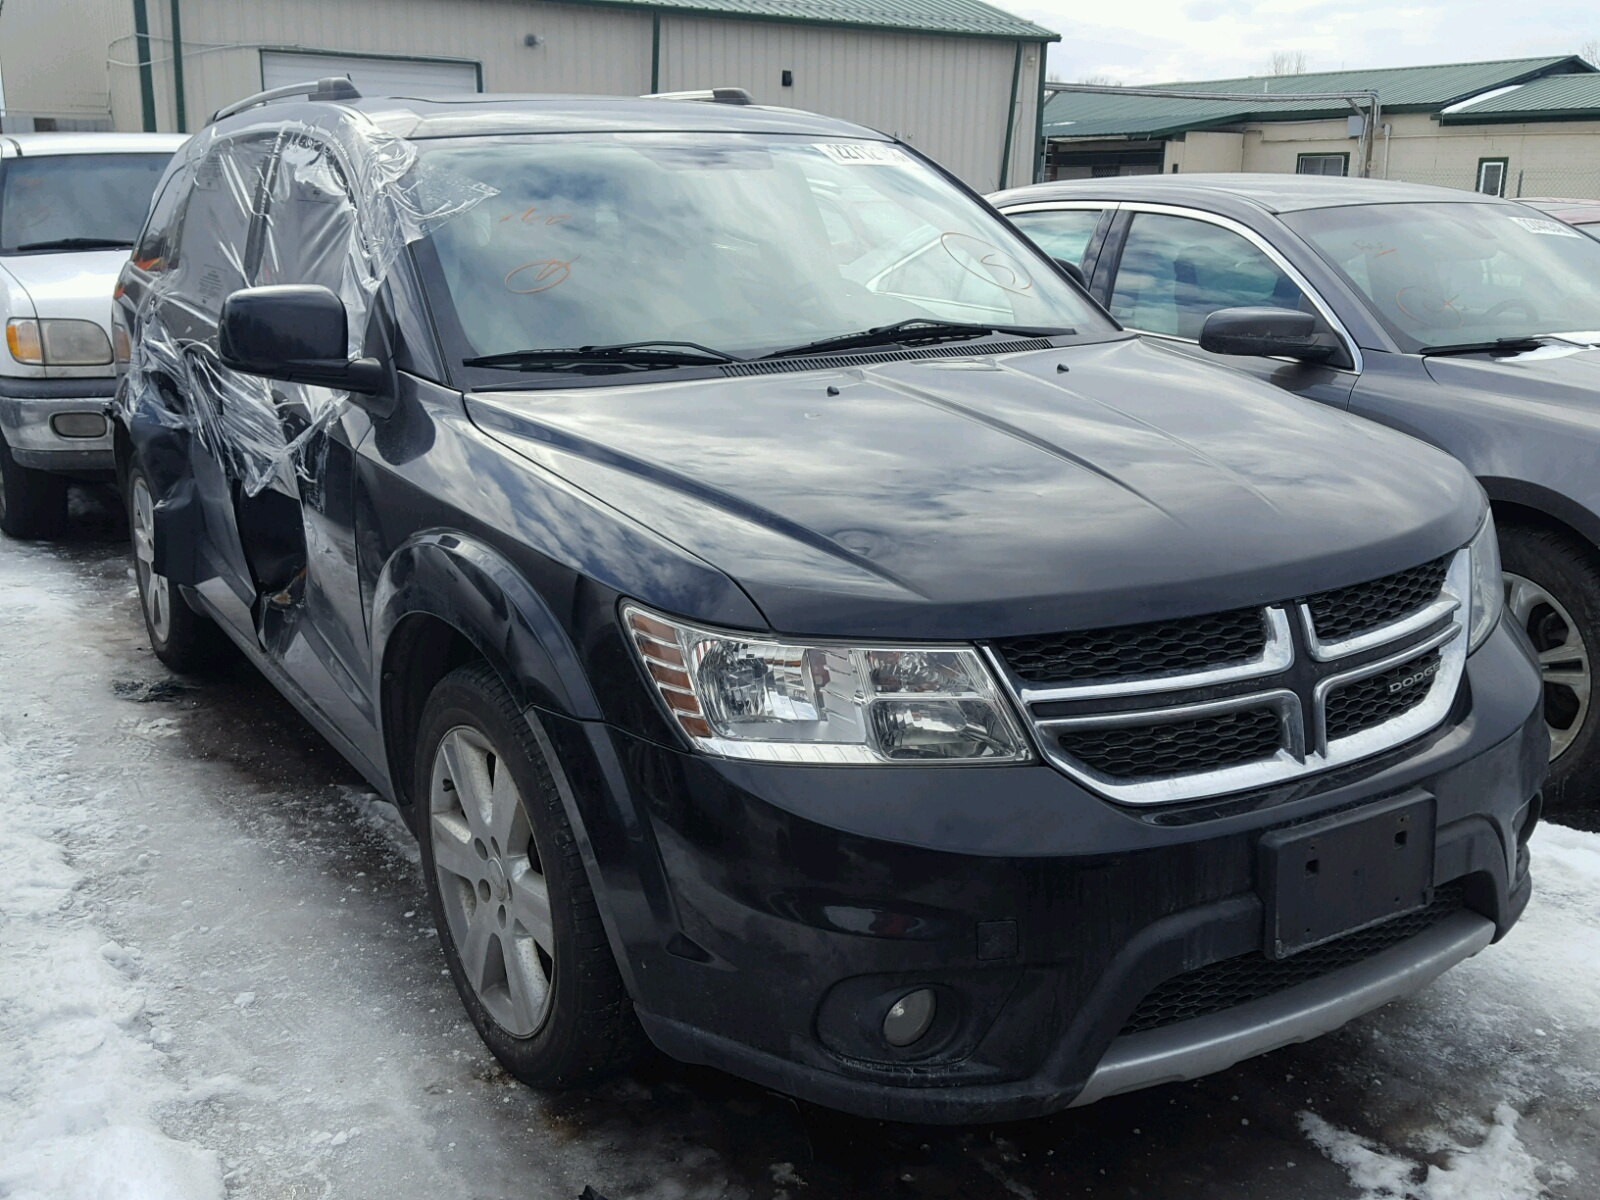 dodge journey for sale mn with Copart 2009 Dodge Ram 3500 Q Salvage Certificate Of Title Boise Id on 2019 Dodge Durango In Snow For Sale Manual Transmission moreover Images Of Jesus Birth page 3 besides Used White Bear Lake 2012 Dodge Journey SXT 3C4PDDBG3CT154682 additionally Jayco Pop Up C er Interior additionally Landers Chrysler Dodge Jeep Ram Of Norman Chrysler.